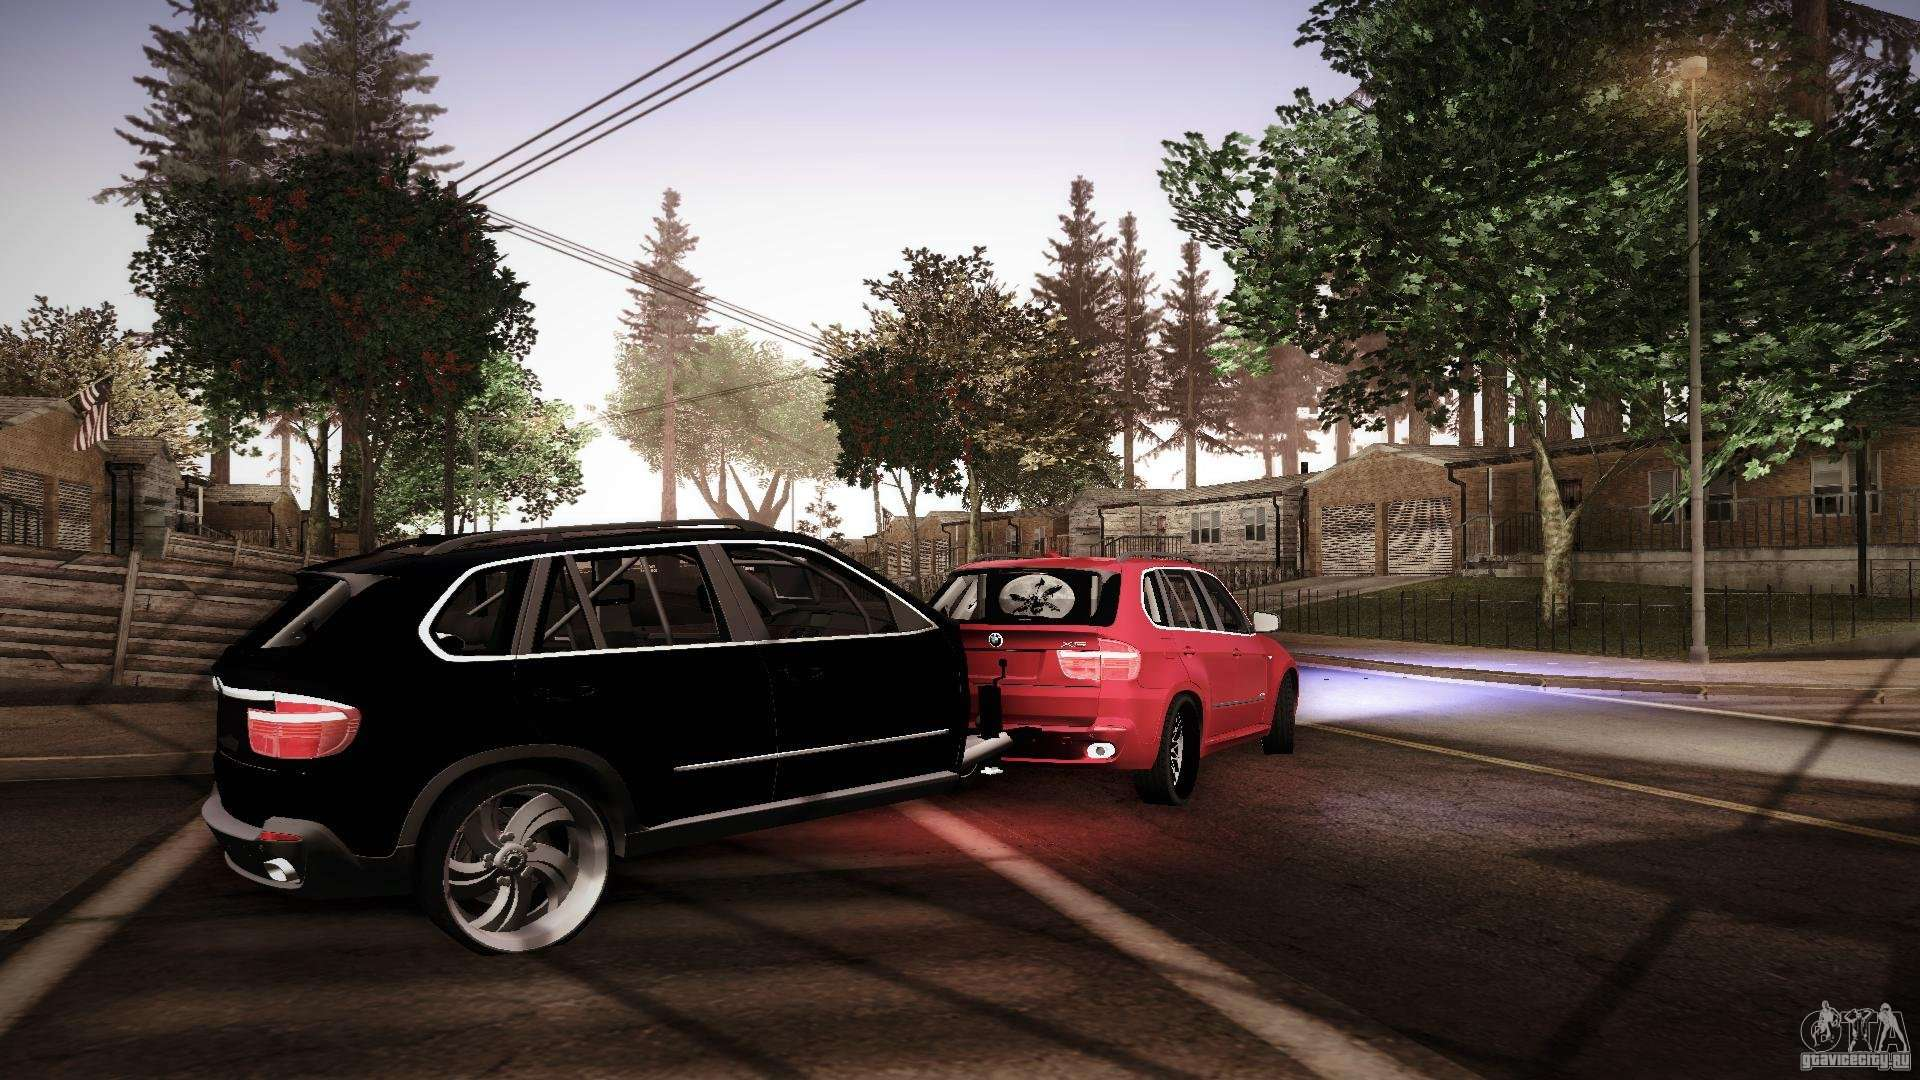 Bm Dsc in addition X further Pic together with Maxresdefault as well Hqdefault. on bmw x5 e53